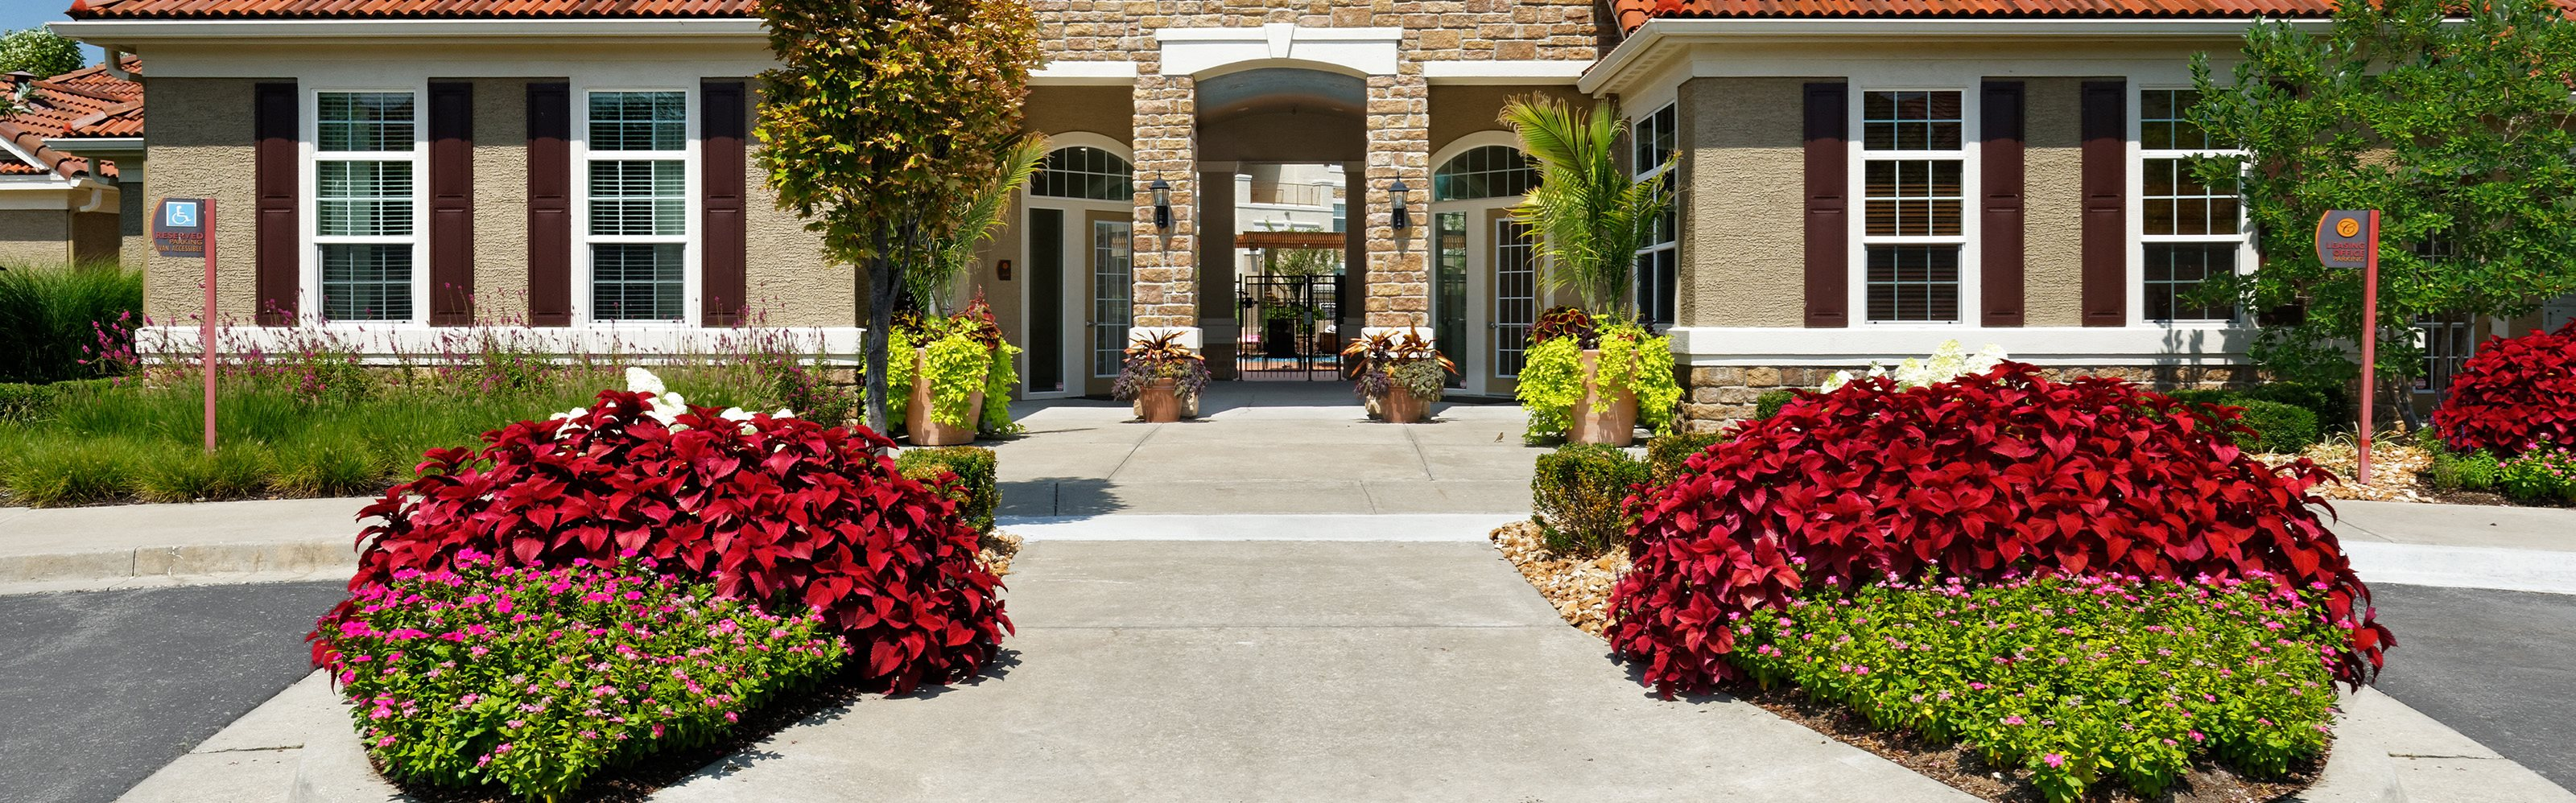 Cordillera Ranch Apartments front entrance